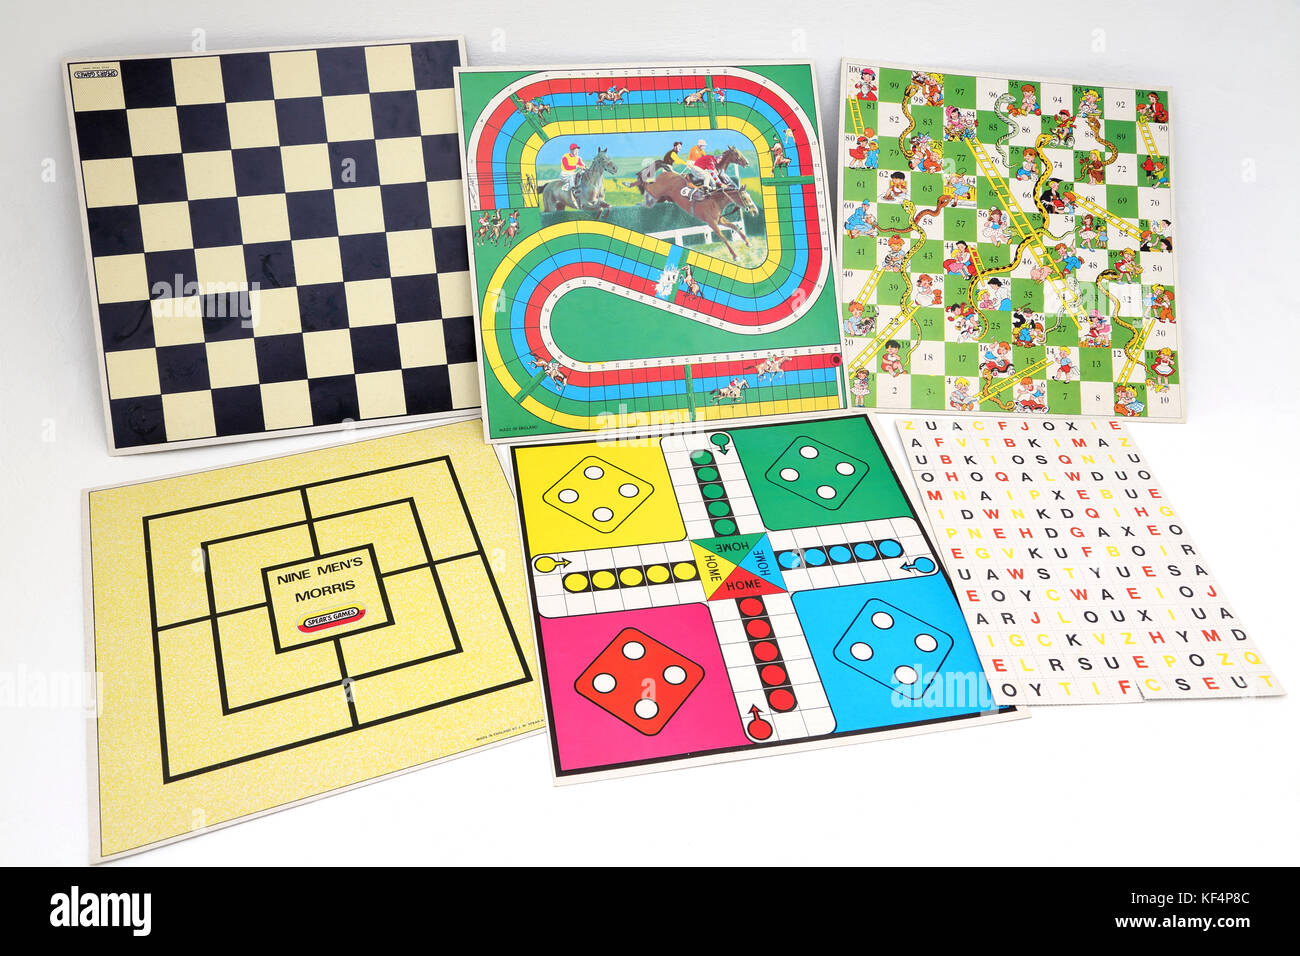 Vintage 1980's Spear's Games Compendium - Draughts, Nine Men's Morris, Steeplechase, Ludo, Snakes and Ladders, Word Stock Photo